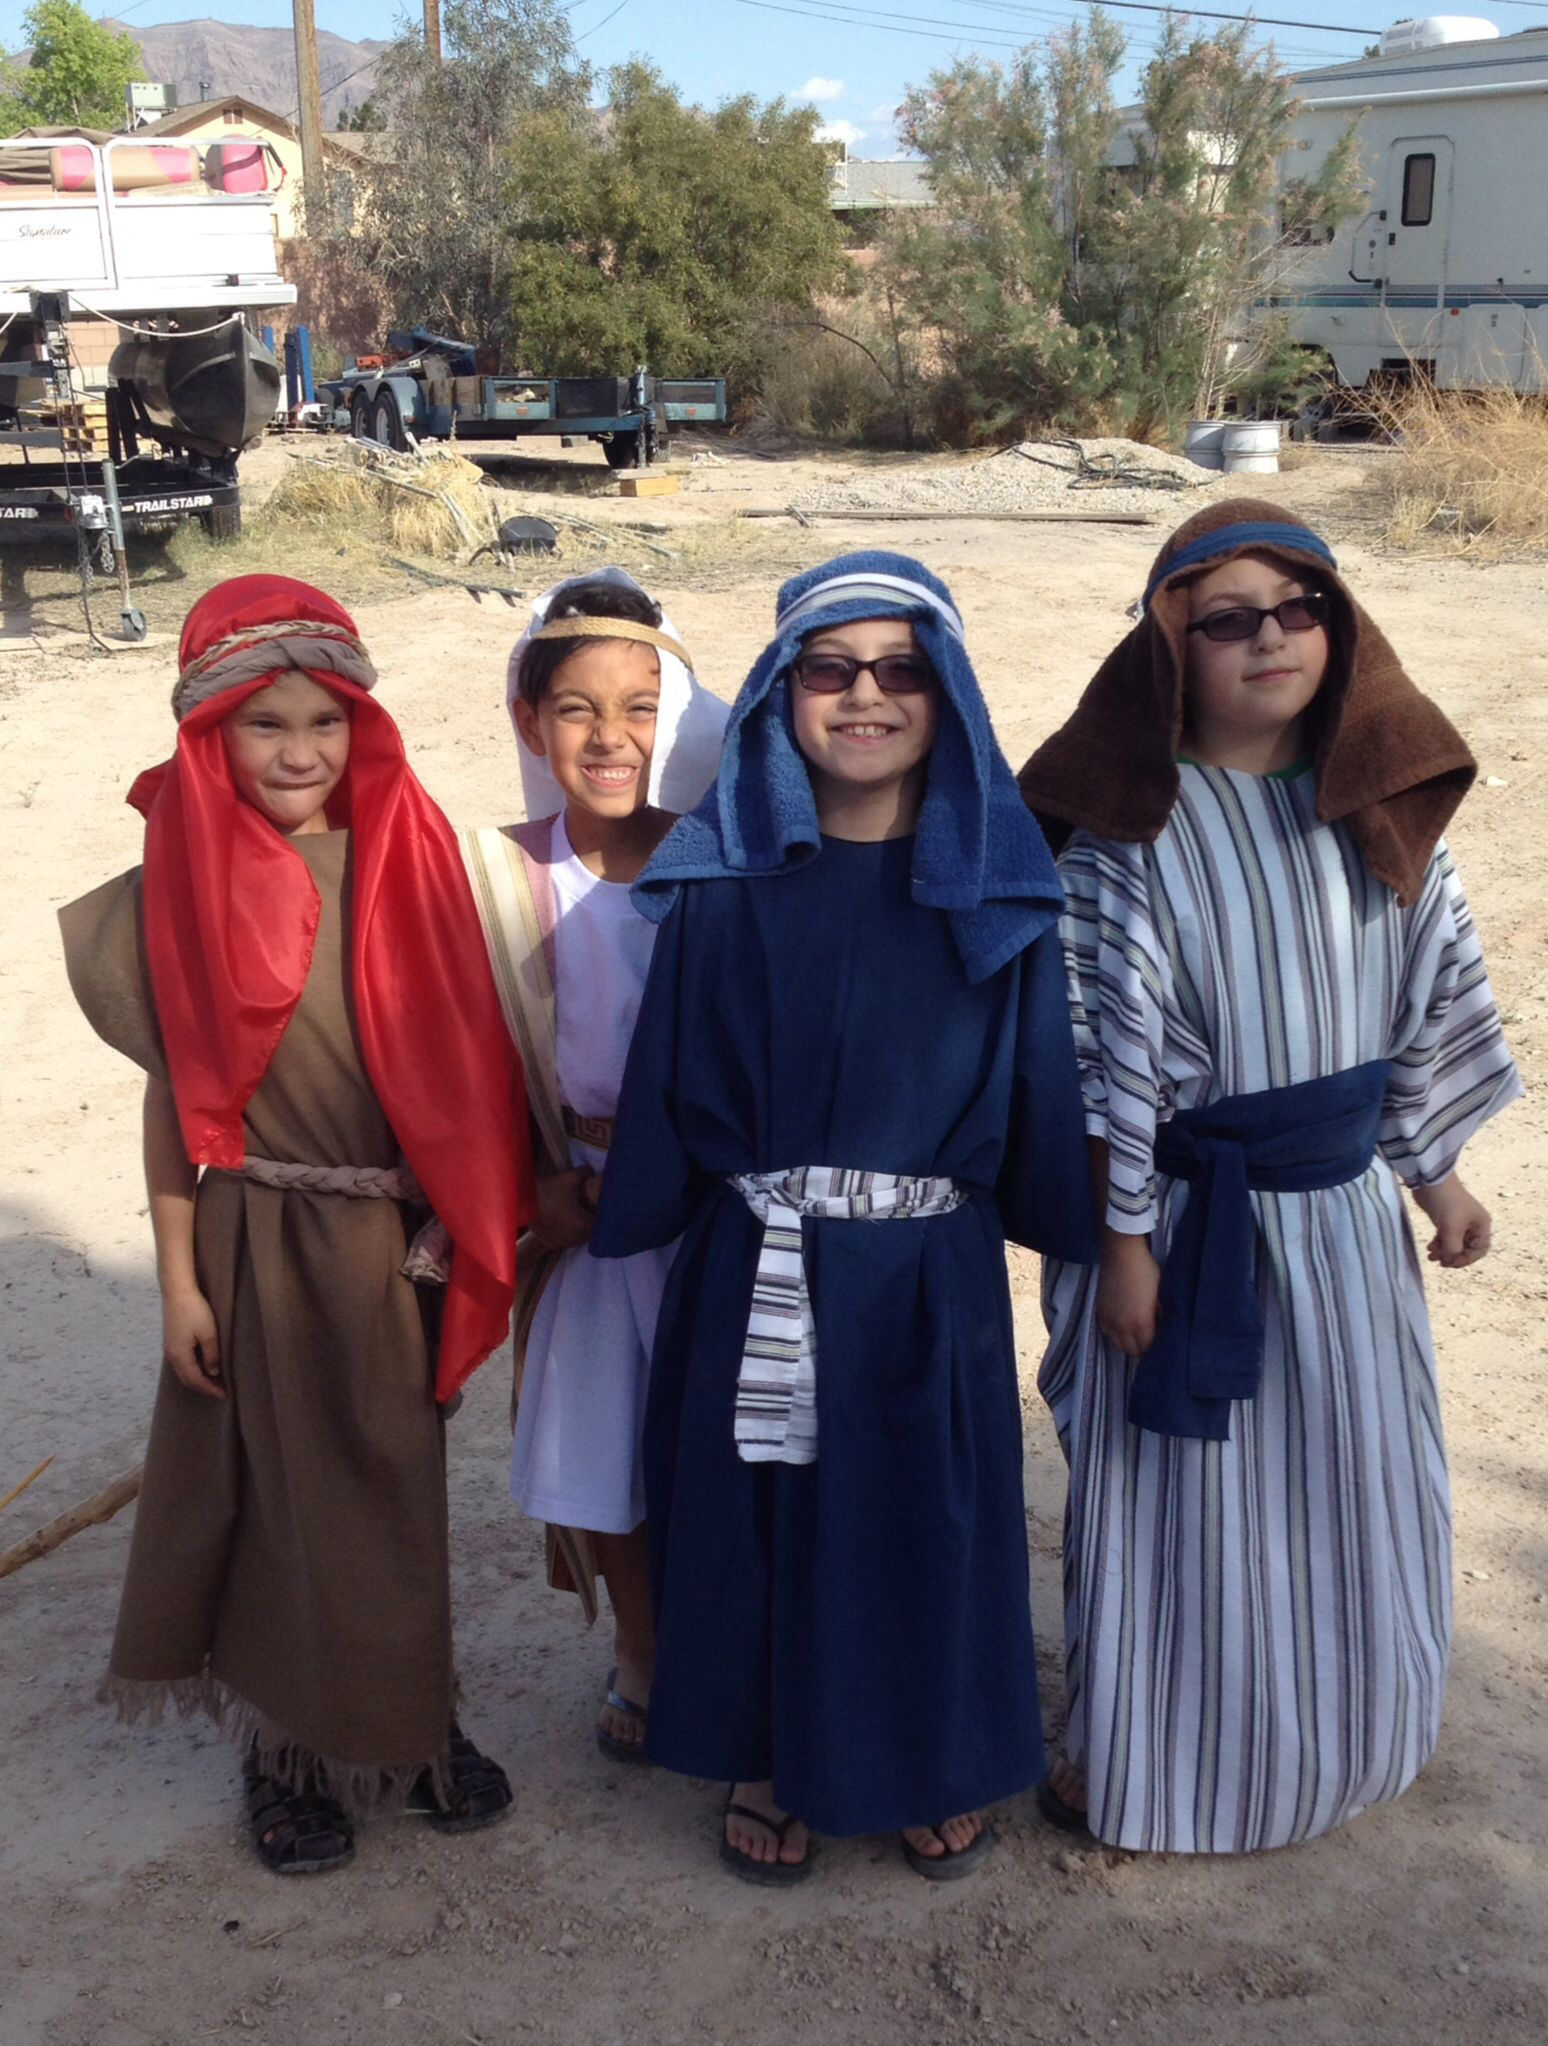 Bible costumes really easy to make used flat sheets folded in bible costumes really easy to make used flat sheets folded in half solutioingenieria Choice Image